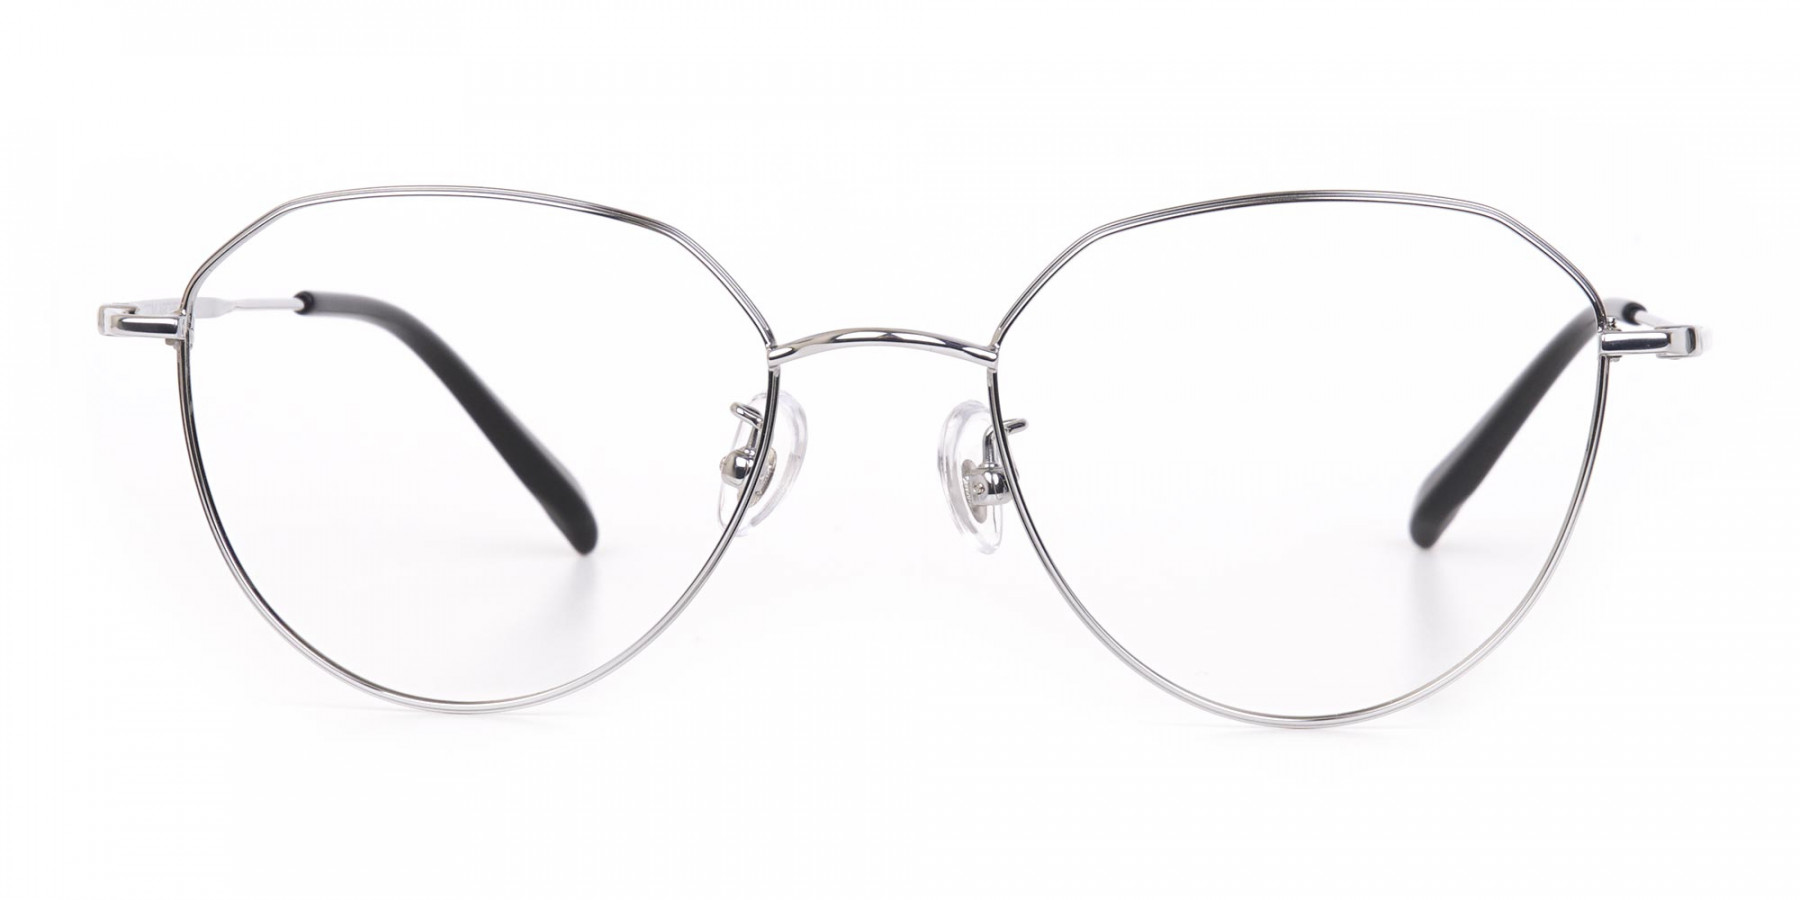 Silver Metal Aviator Glasses Frame Unisex-1